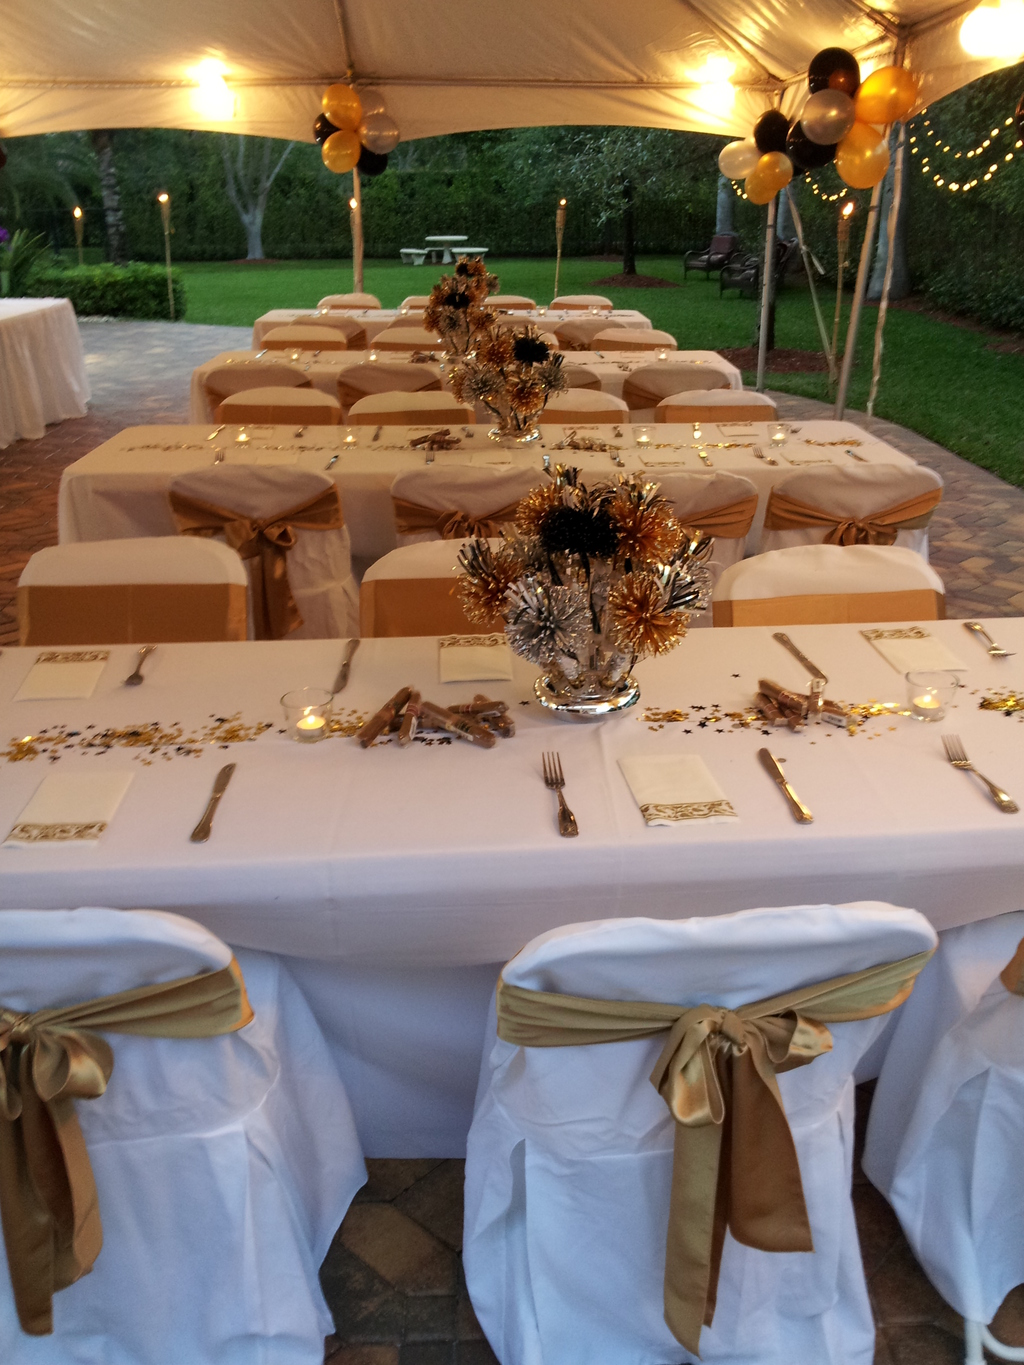 White & Gold Table Linens Setup Party